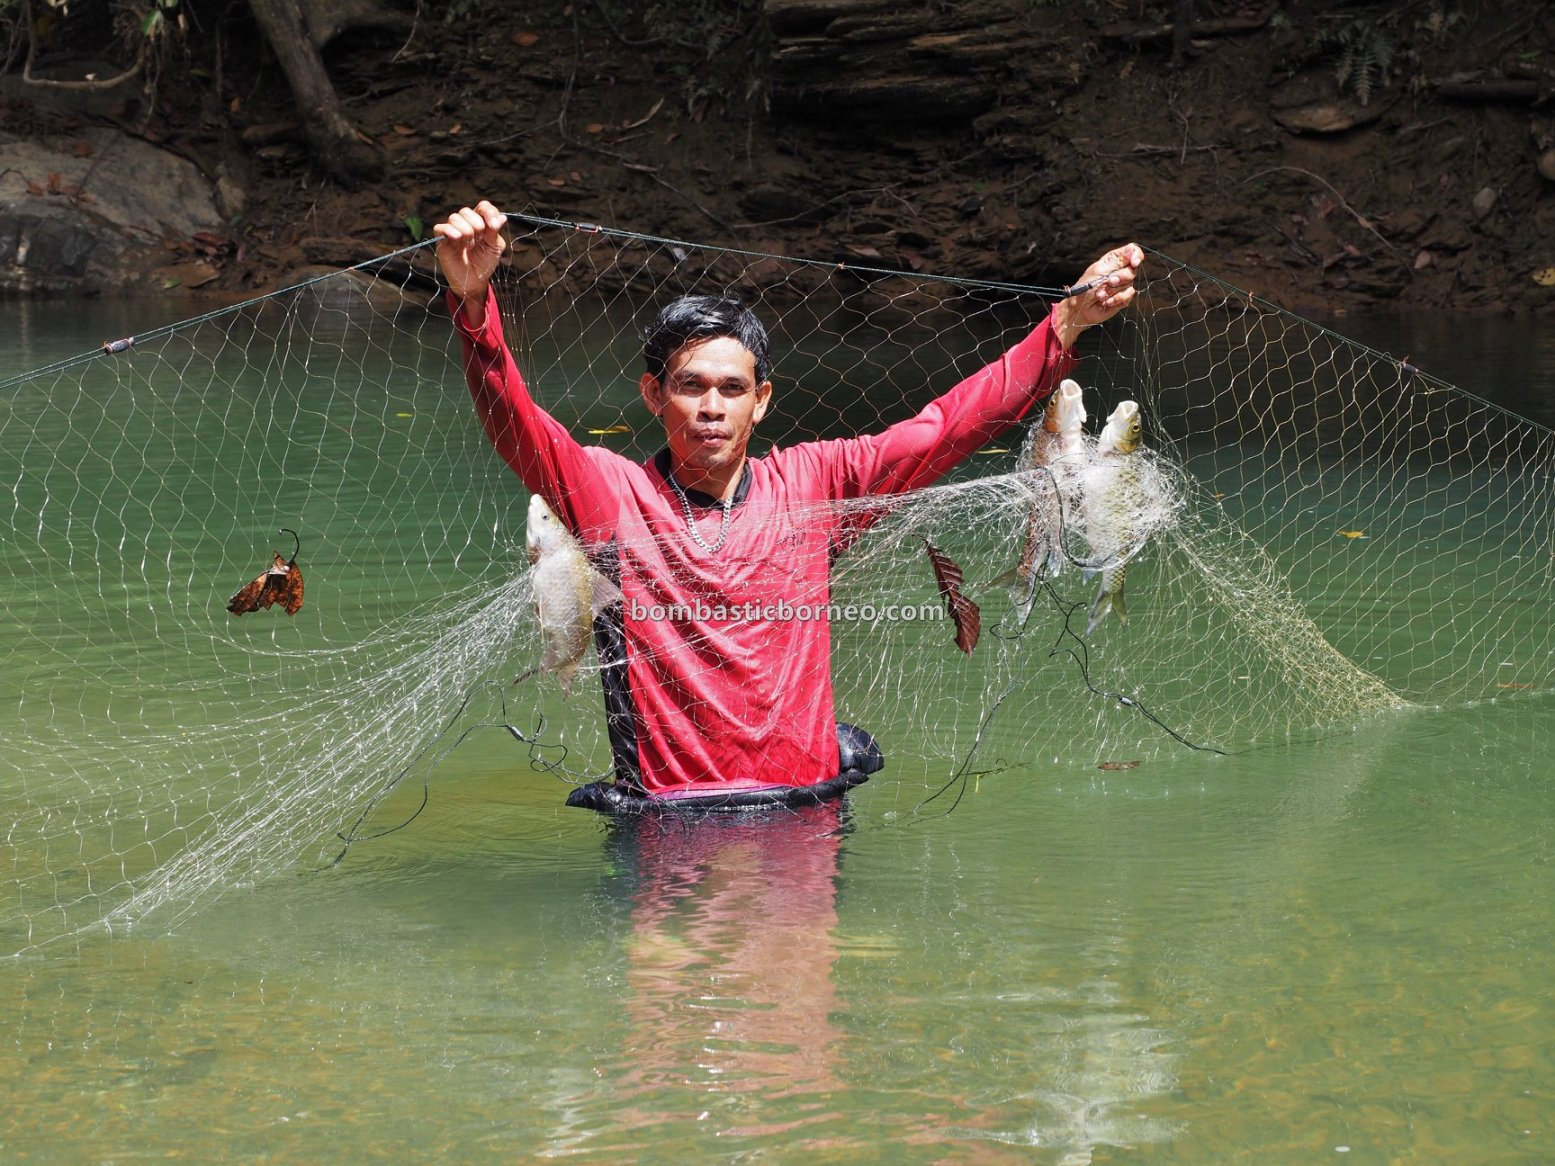 empangan, destination, exotic fish, Ikan semah, hunting, memancing, homestay, Kapit, Orang Ulu, Tourism, tourist attraction, Trans Border, Borneo, 探索婆罗洲游踪, 砂拉越巴贡水电站, 马来西亚钓鱼之旅